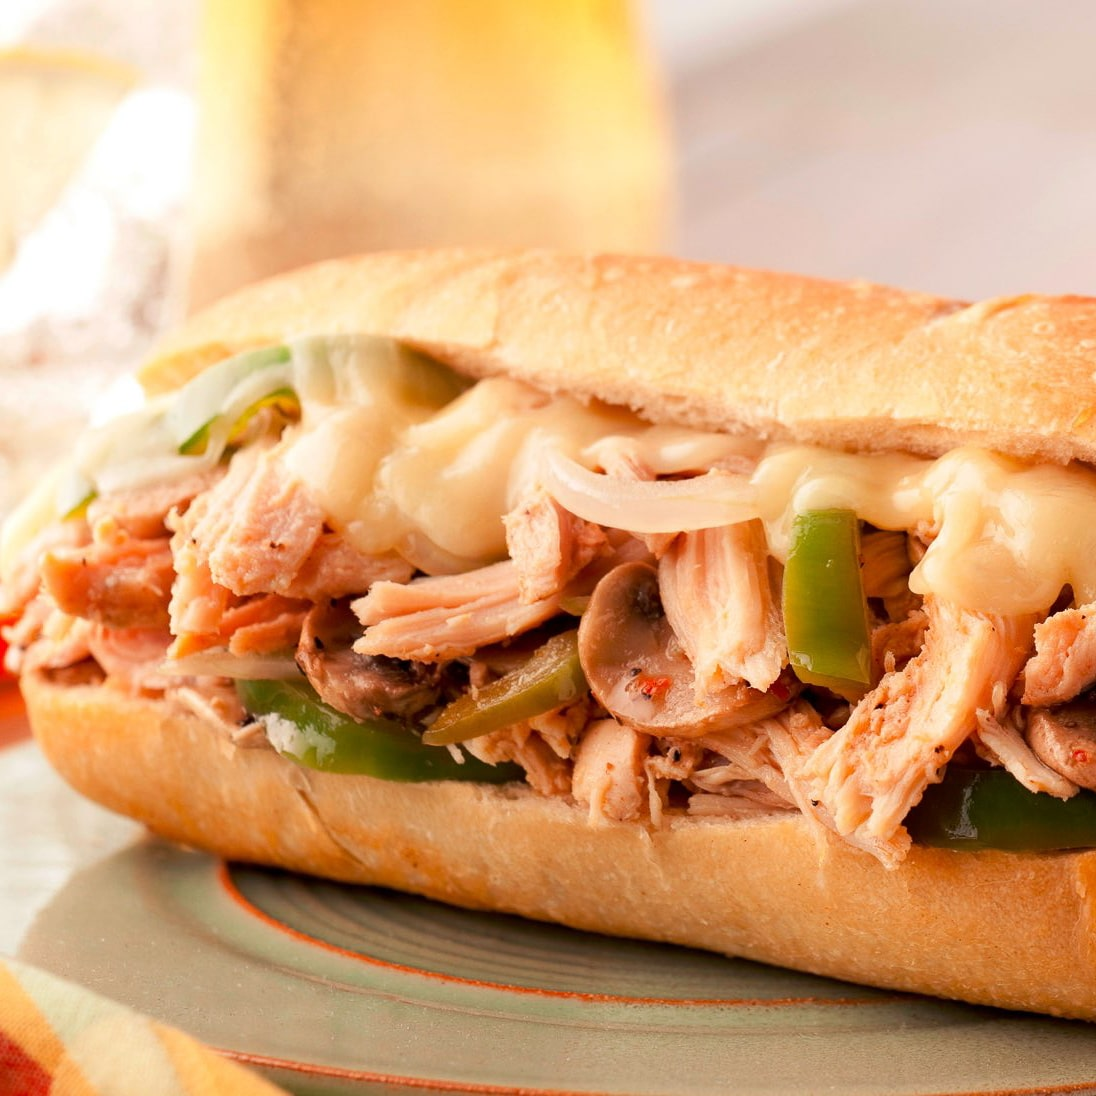 Chicken philly cheese steak cooked daily in Glendale Arizona